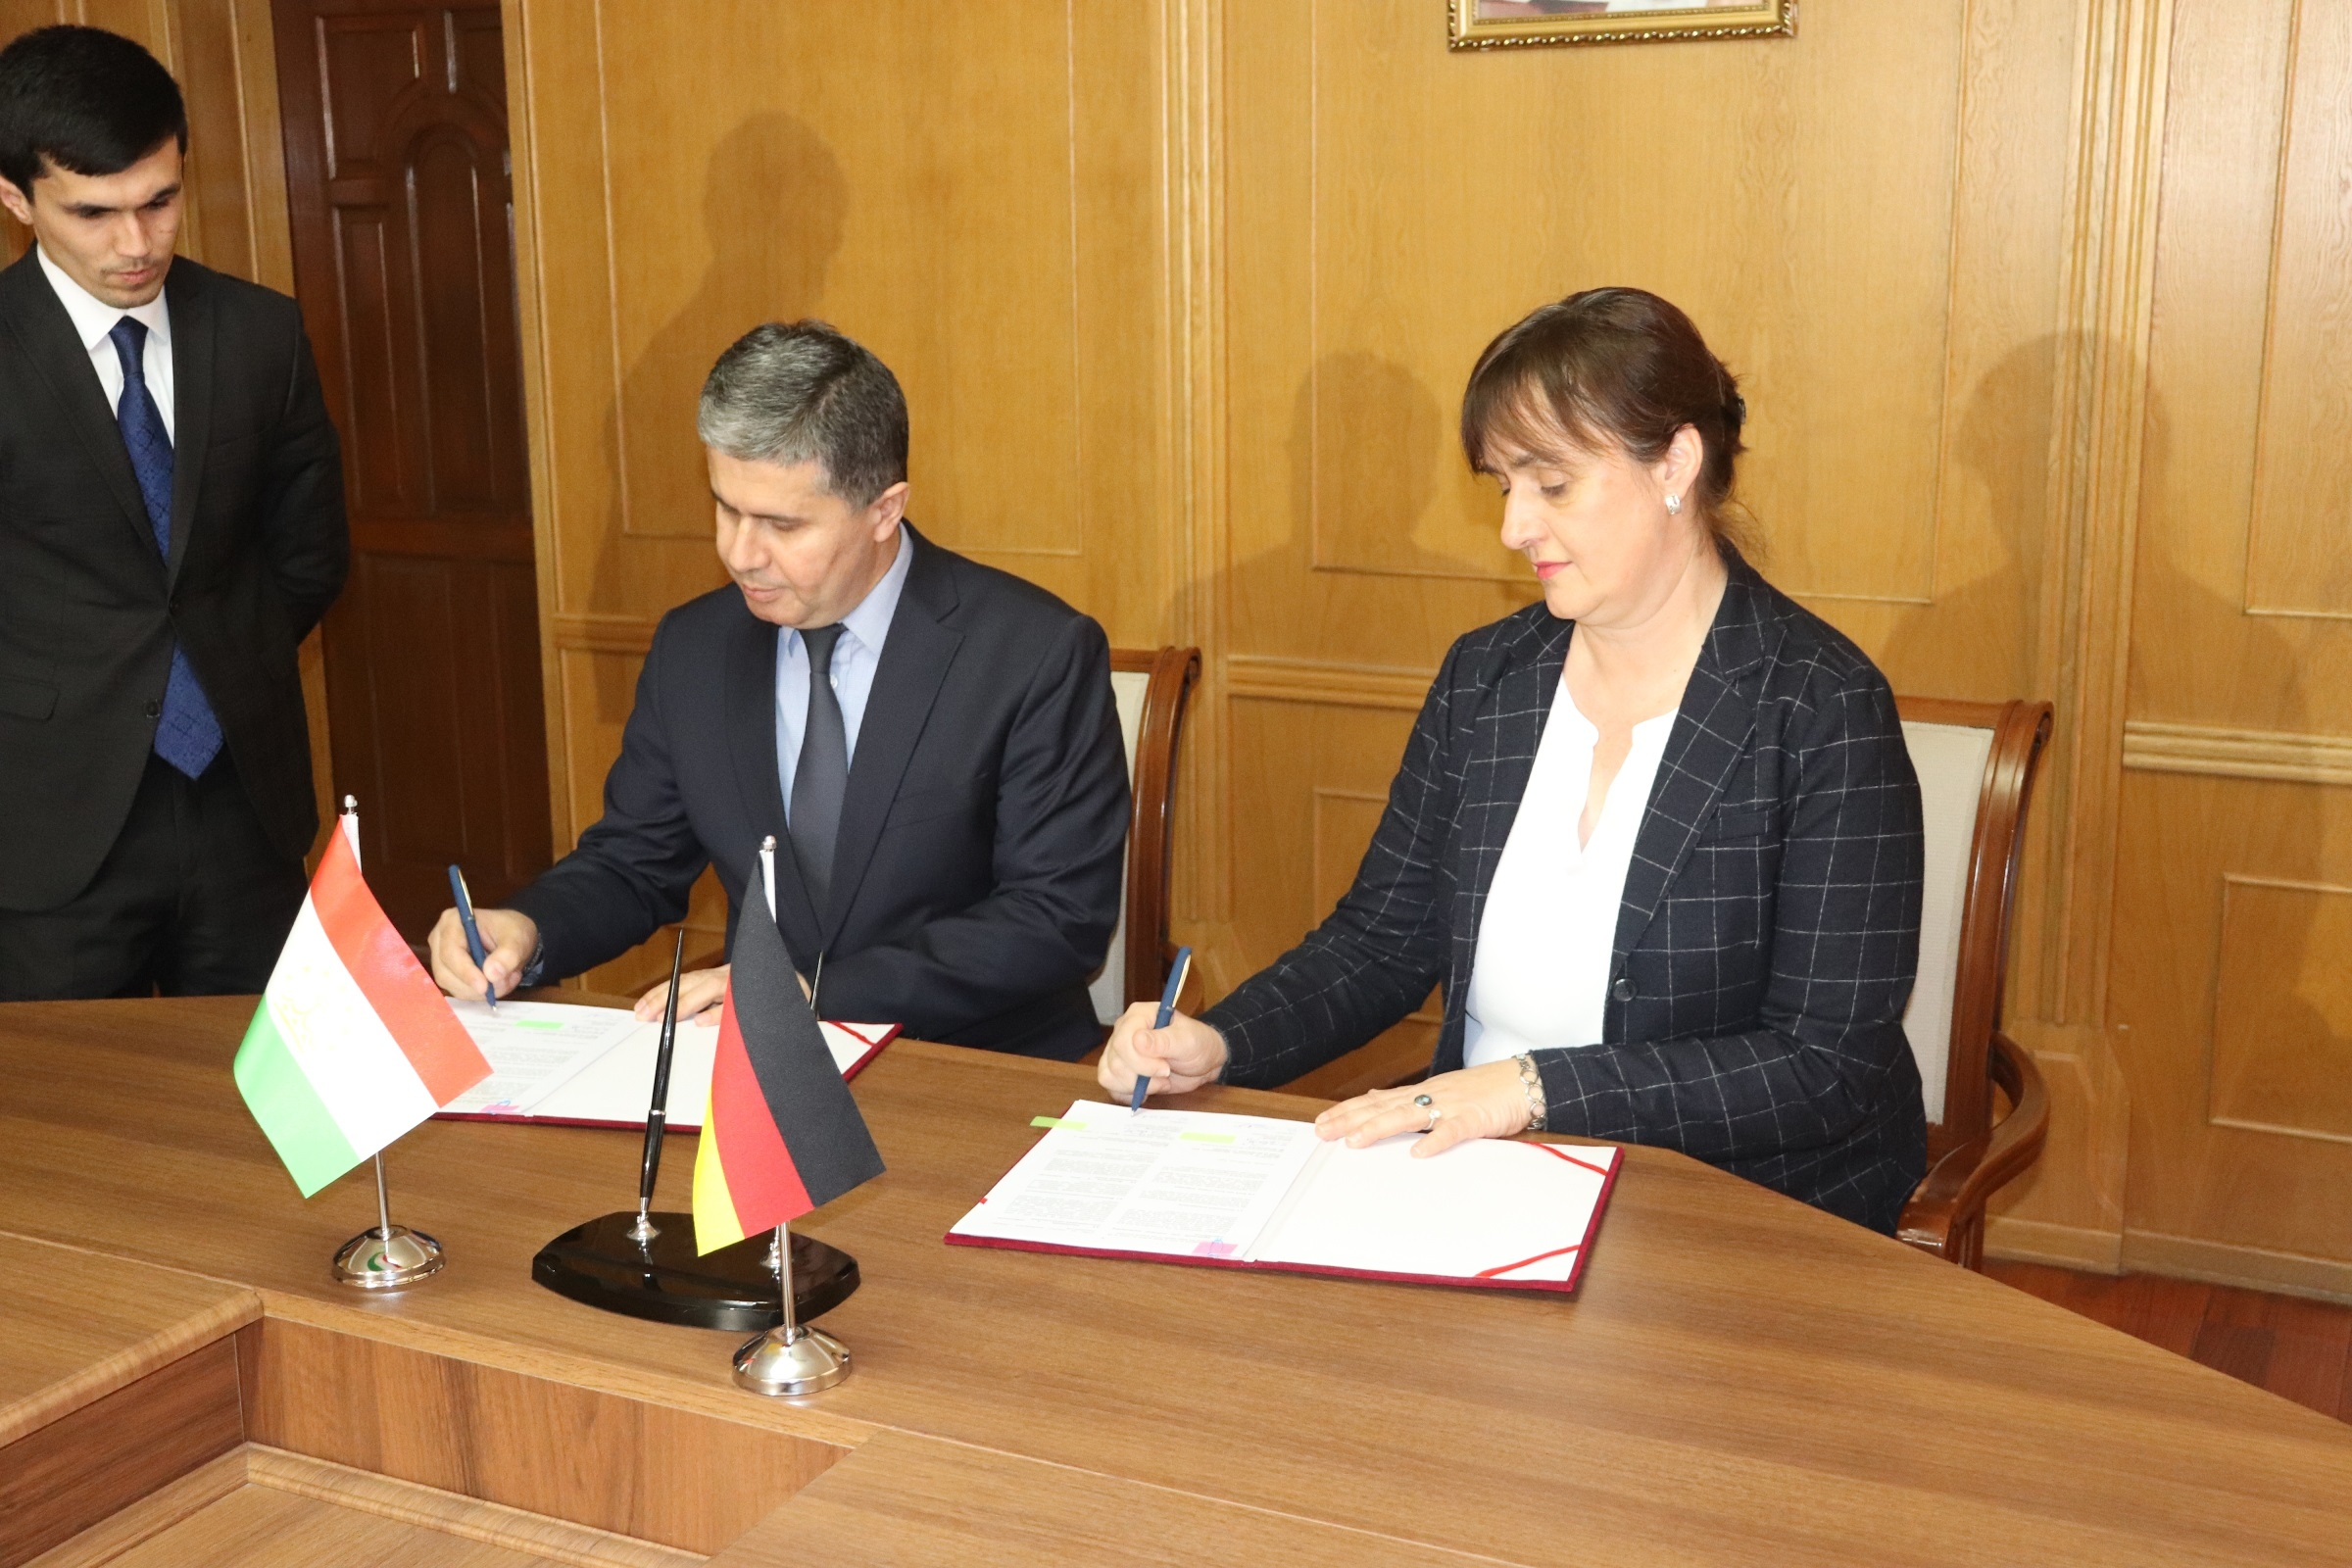 Signing of the Agreement on Simplification of Trade Procedures between the Ministry of Economic Development and Trade of the Republic of Tajikistan and the German Agency for International Cooperation (GIZ)